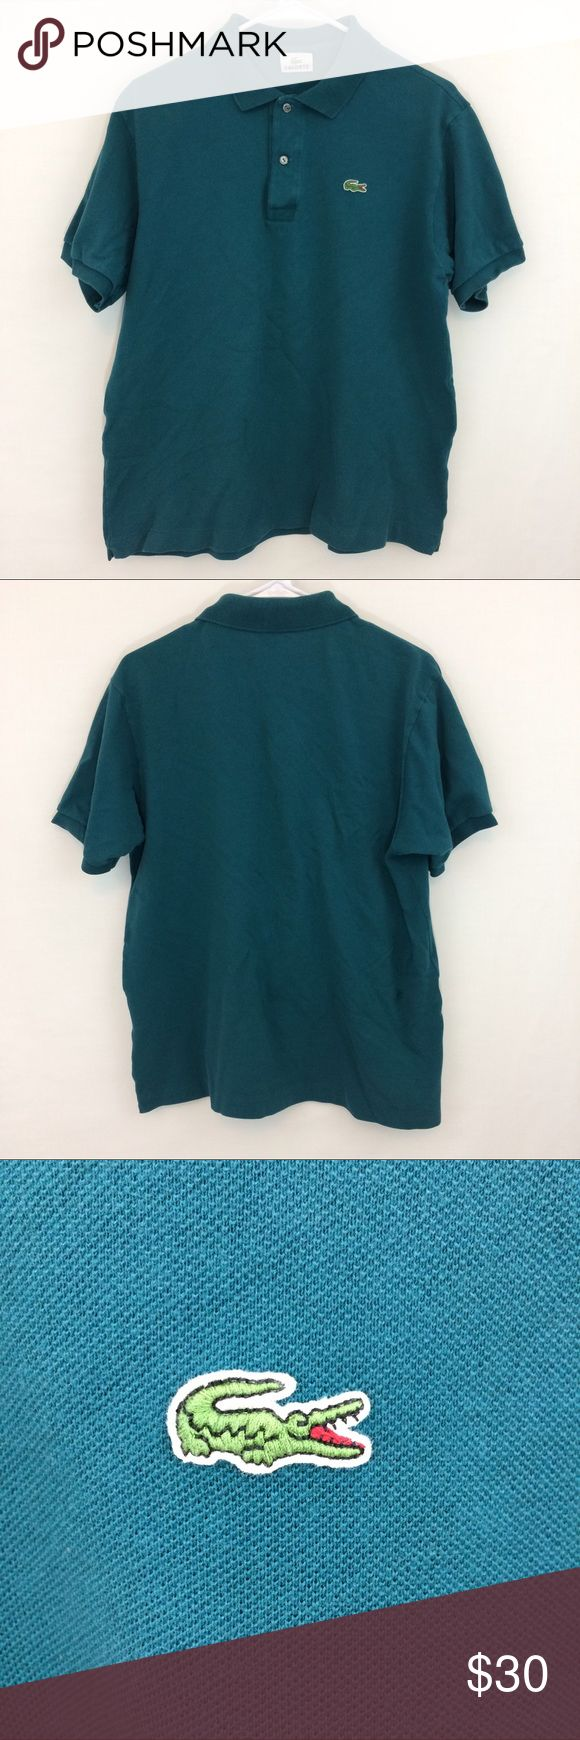 Lacoste Polo Shirt This is a Lacoste dark turquoise polo shirt. It is really nice gently used condition. Lacoste Shirts Polos